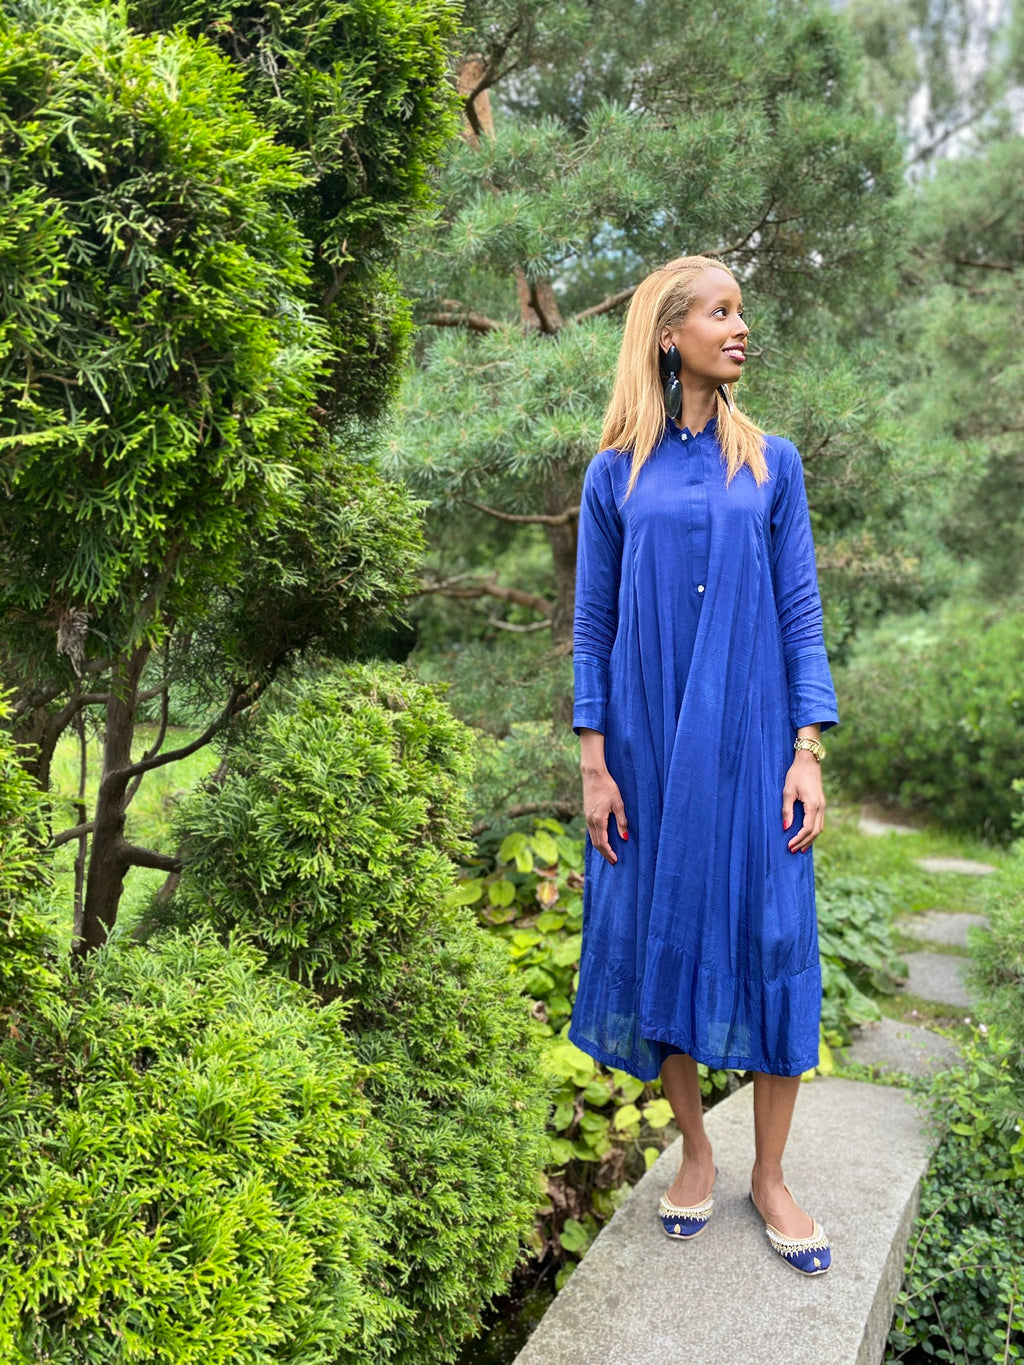 Kalikameezcph fusion dress royal blue